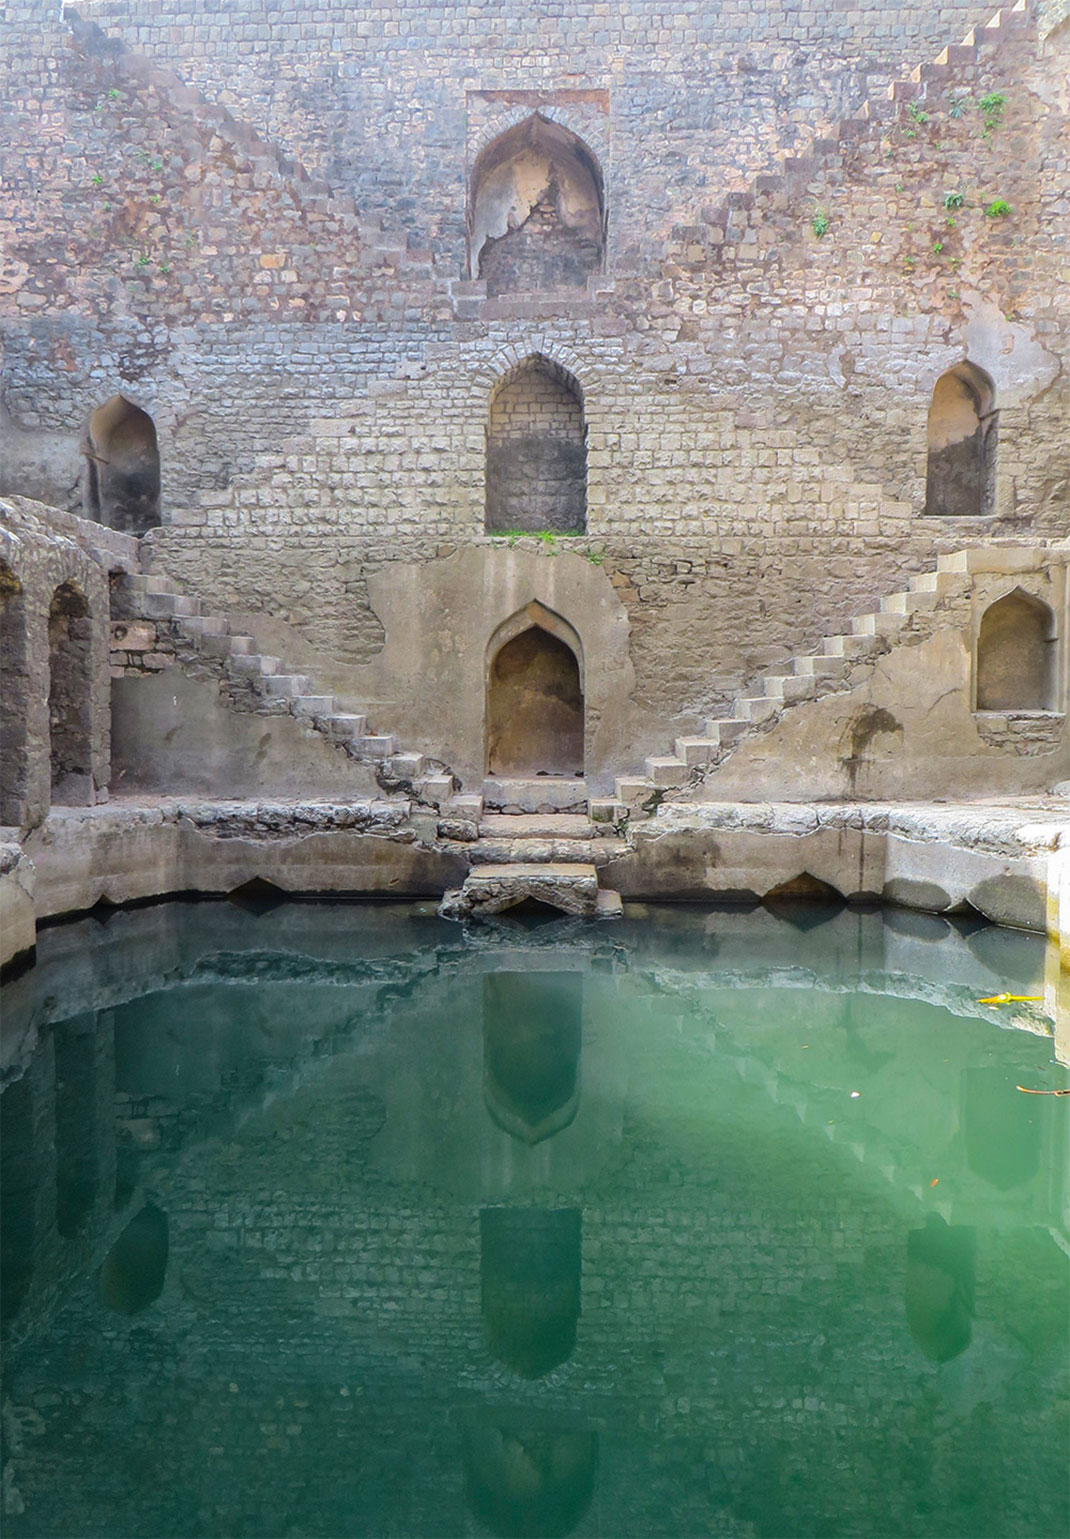 Admire These 2000 Year Old Somptous Buildings In India Destined To Disappear-8